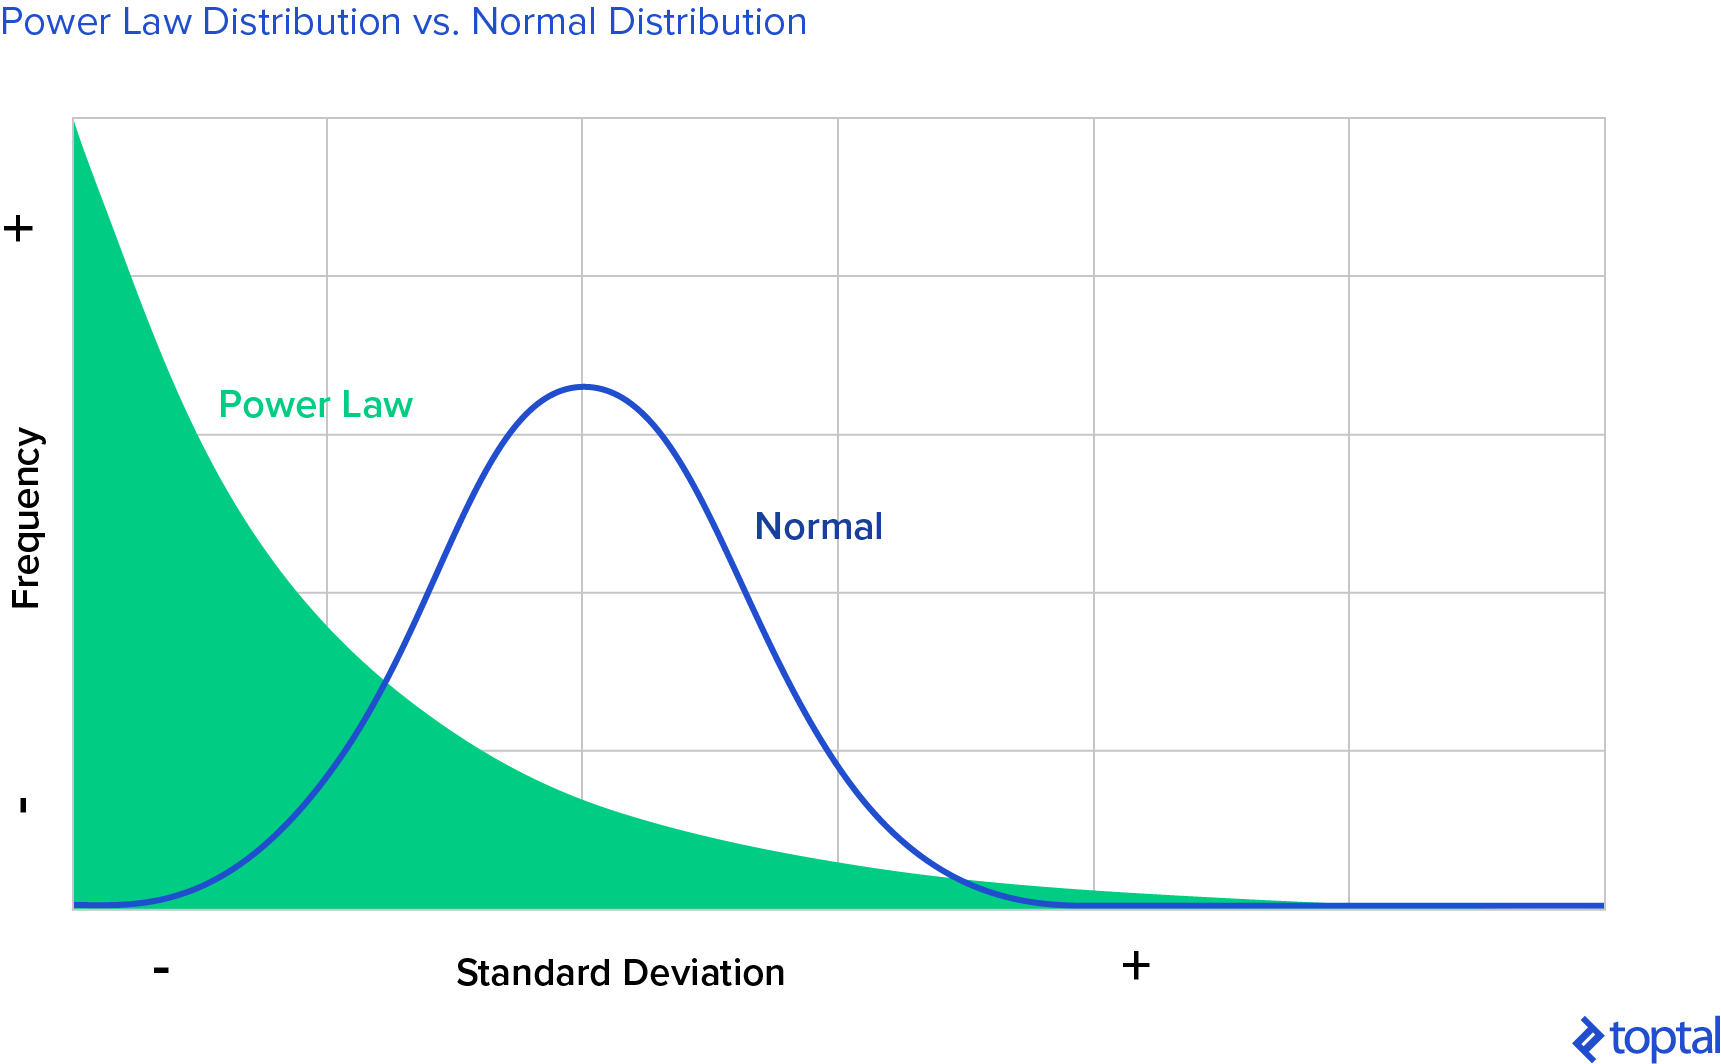 Venture Capital Returns: Power Law Distribution vs. Normal Distribution